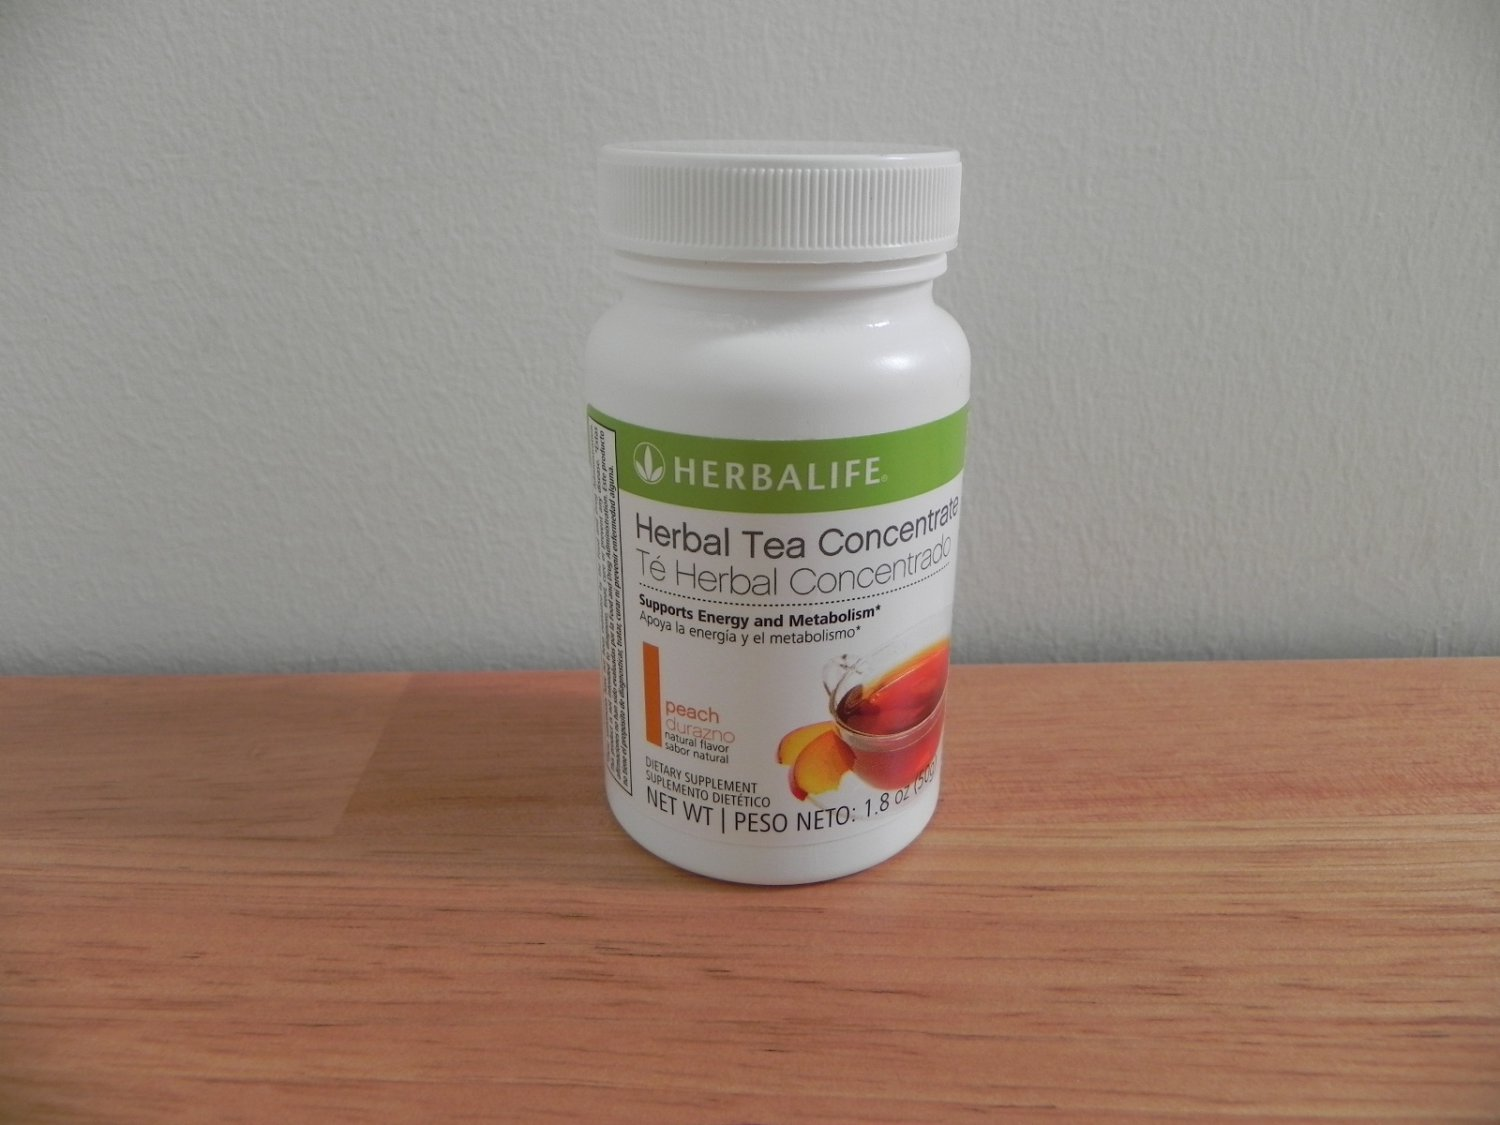 Herbalife Herbal Tea Concentrate 1.8oz 50g Peach ShapeWorks 2011 exp 9/2013